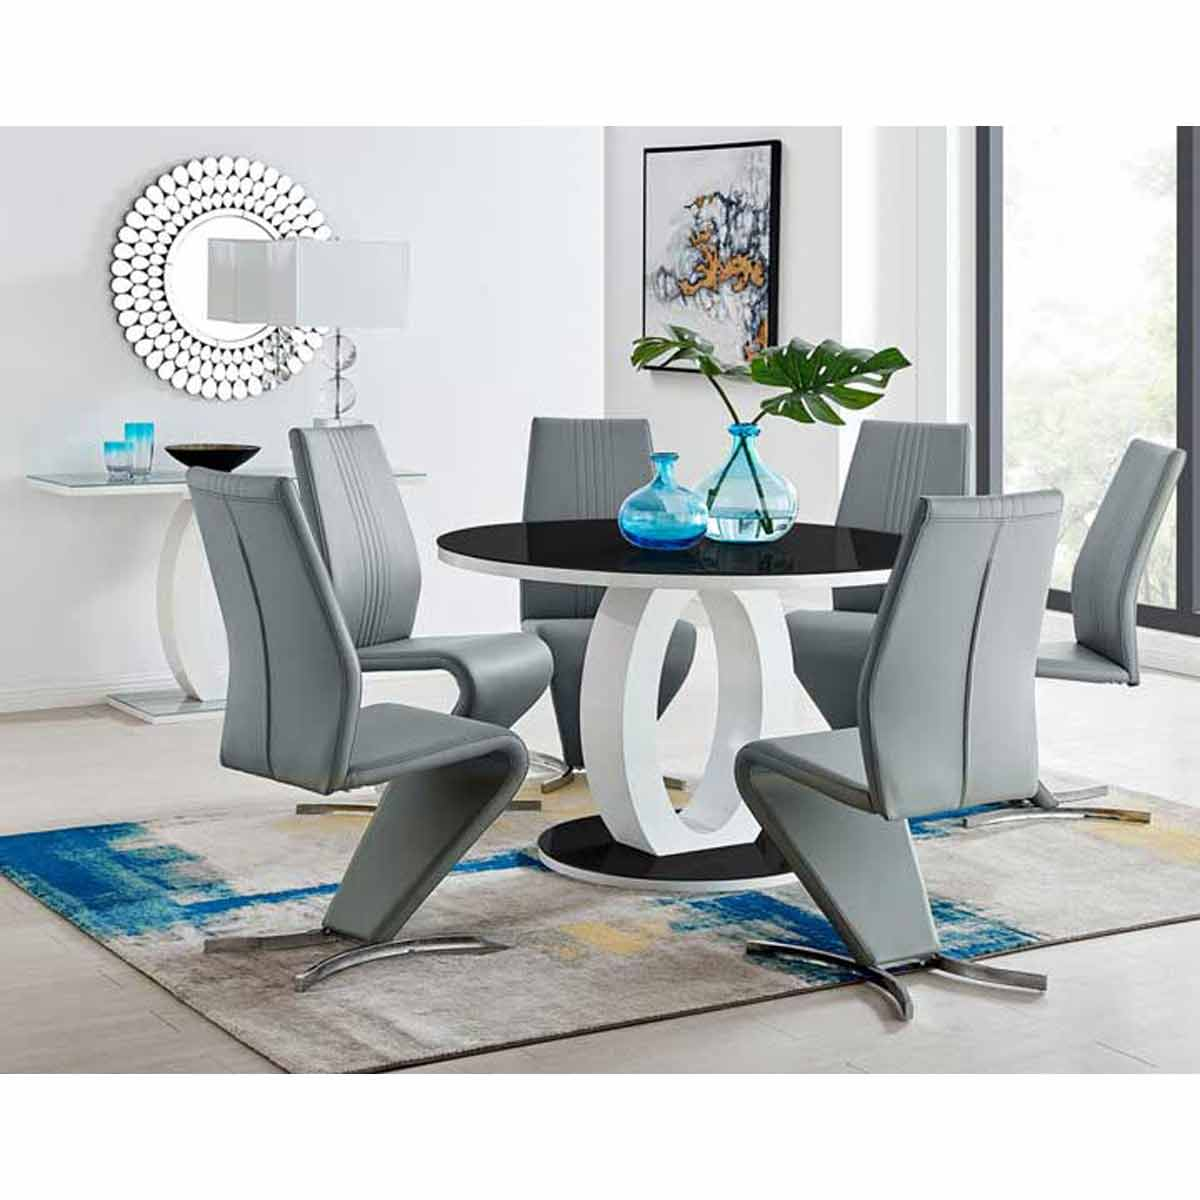 Furniture Box Giovani High Gloss And Glass Large Round Dining Table And 4 Luxury Elephant Grey Willow Dining Chairs Set